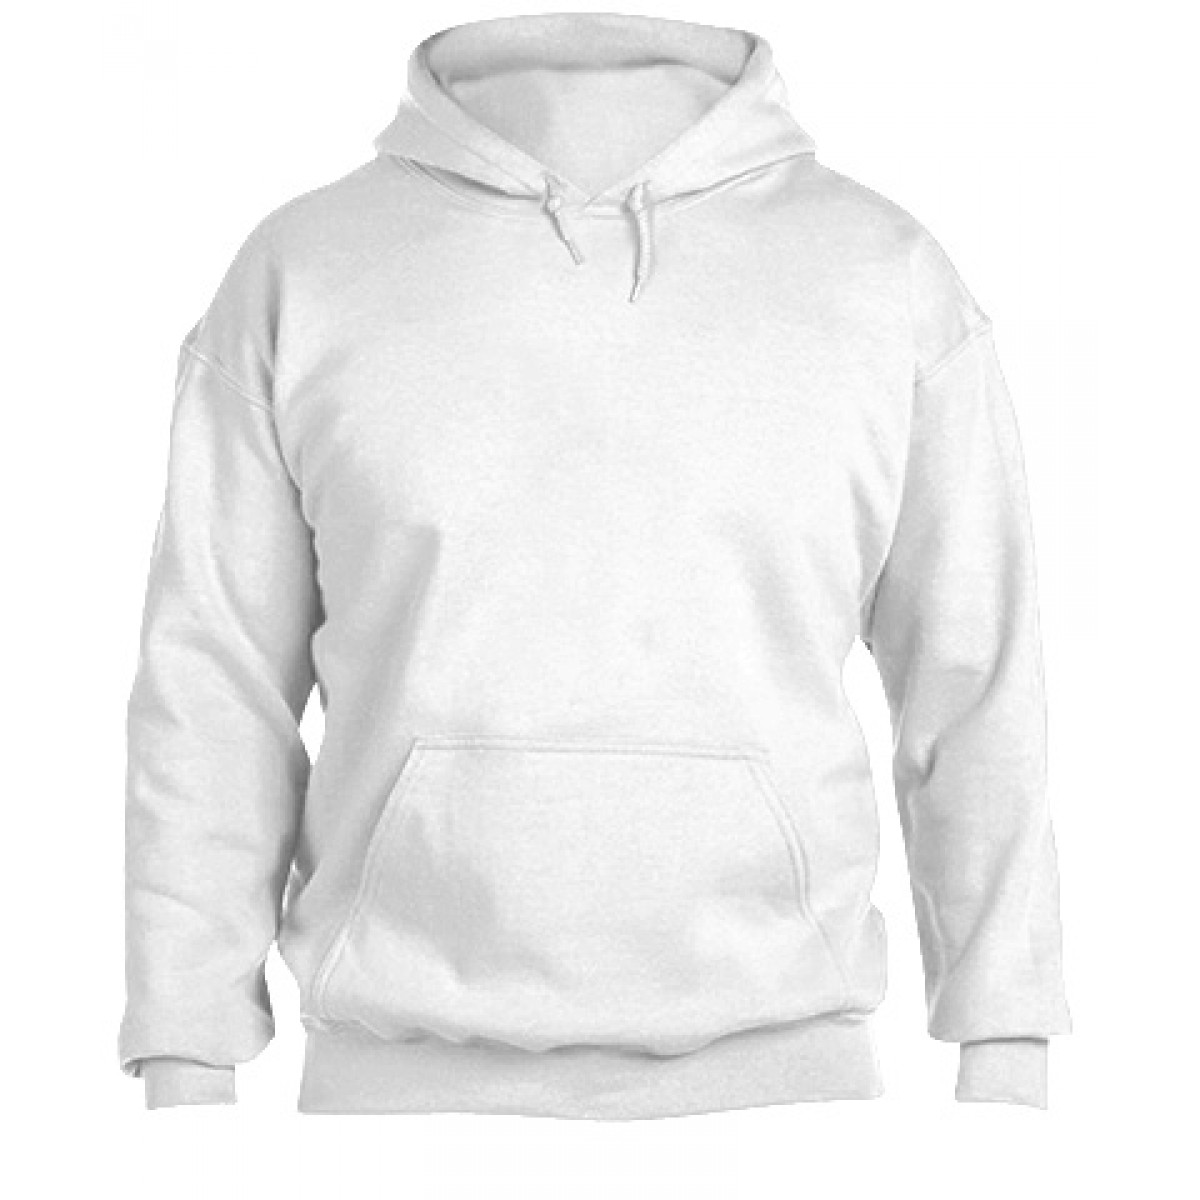 Solid Hooded Sweatshirt  50/50 Heavy Blend-White-3XL